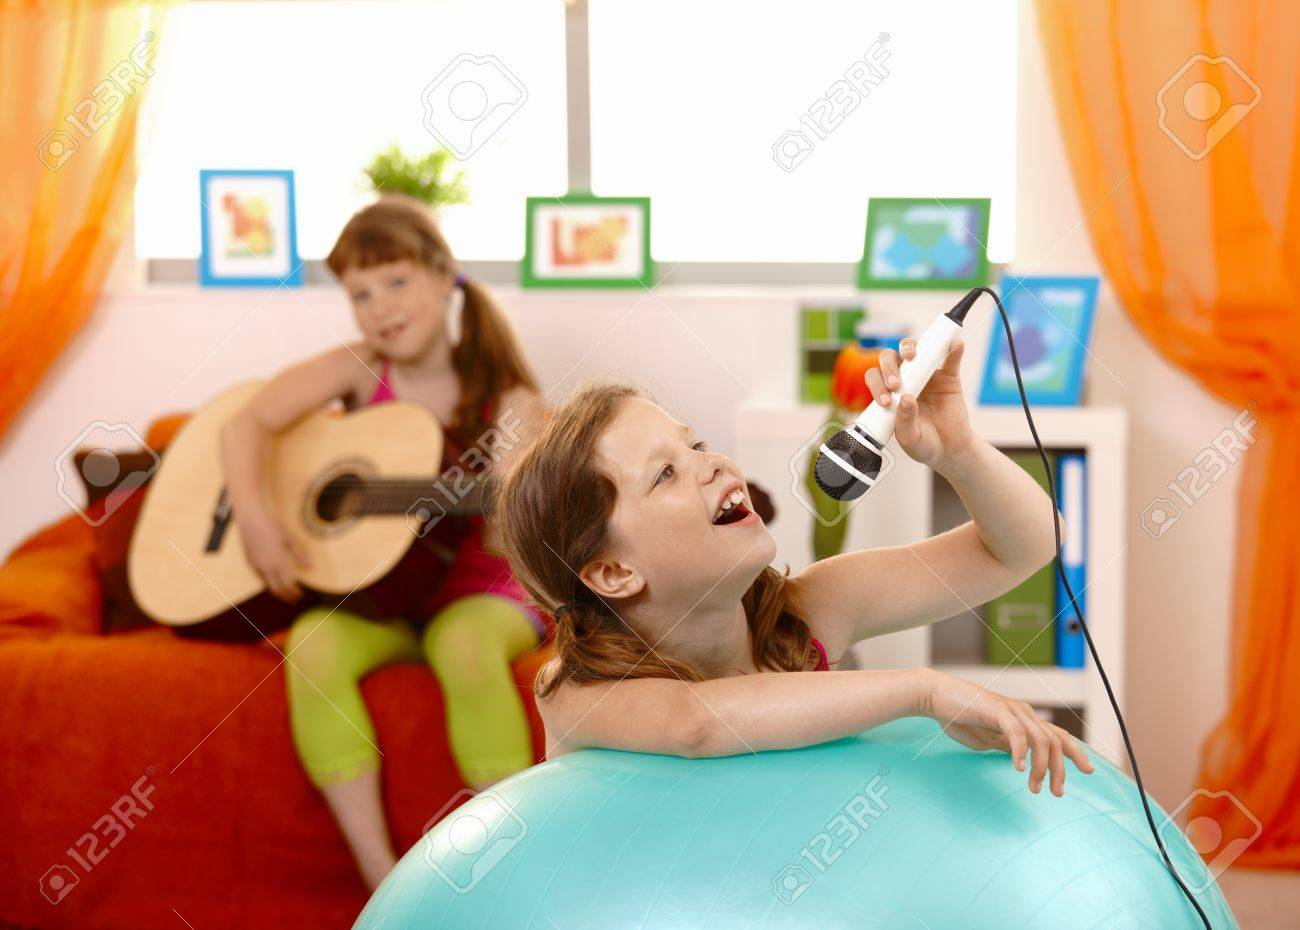 Young girl singing into microphone, having fun with guitar player friend at home. Stock Photo - 8783878